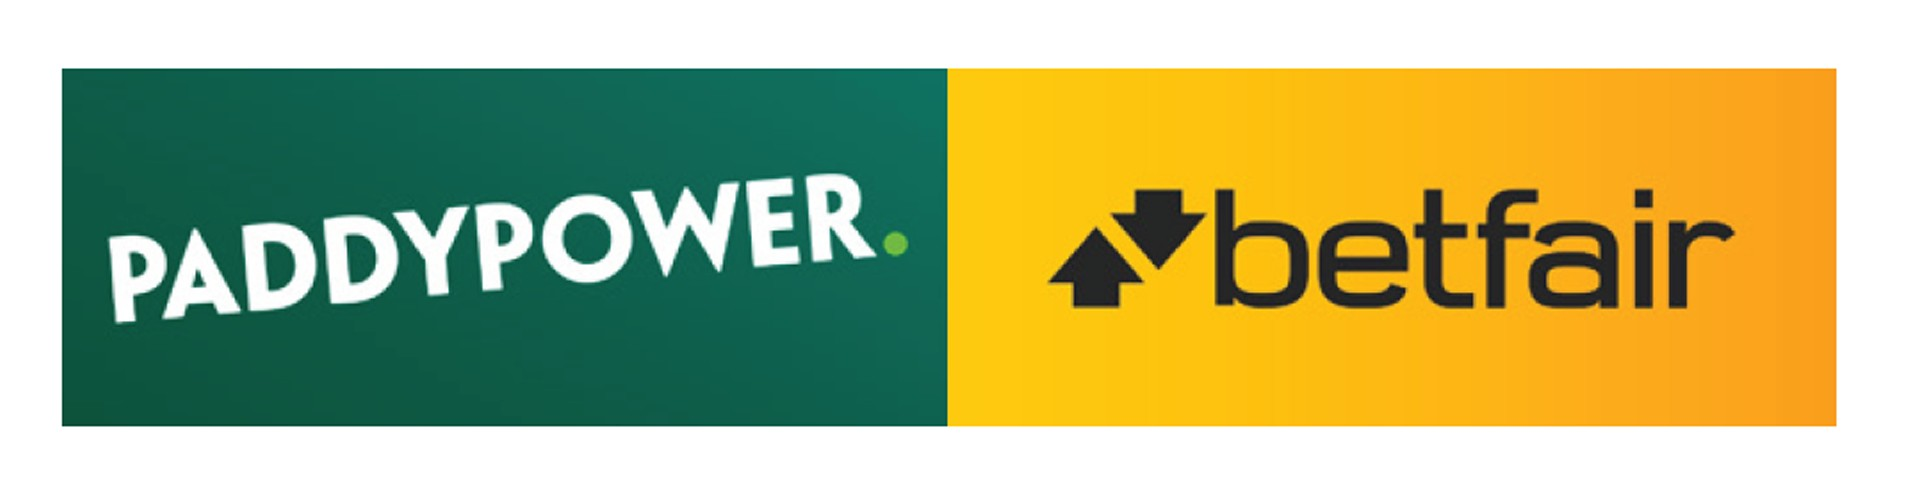 paddy power betfair image